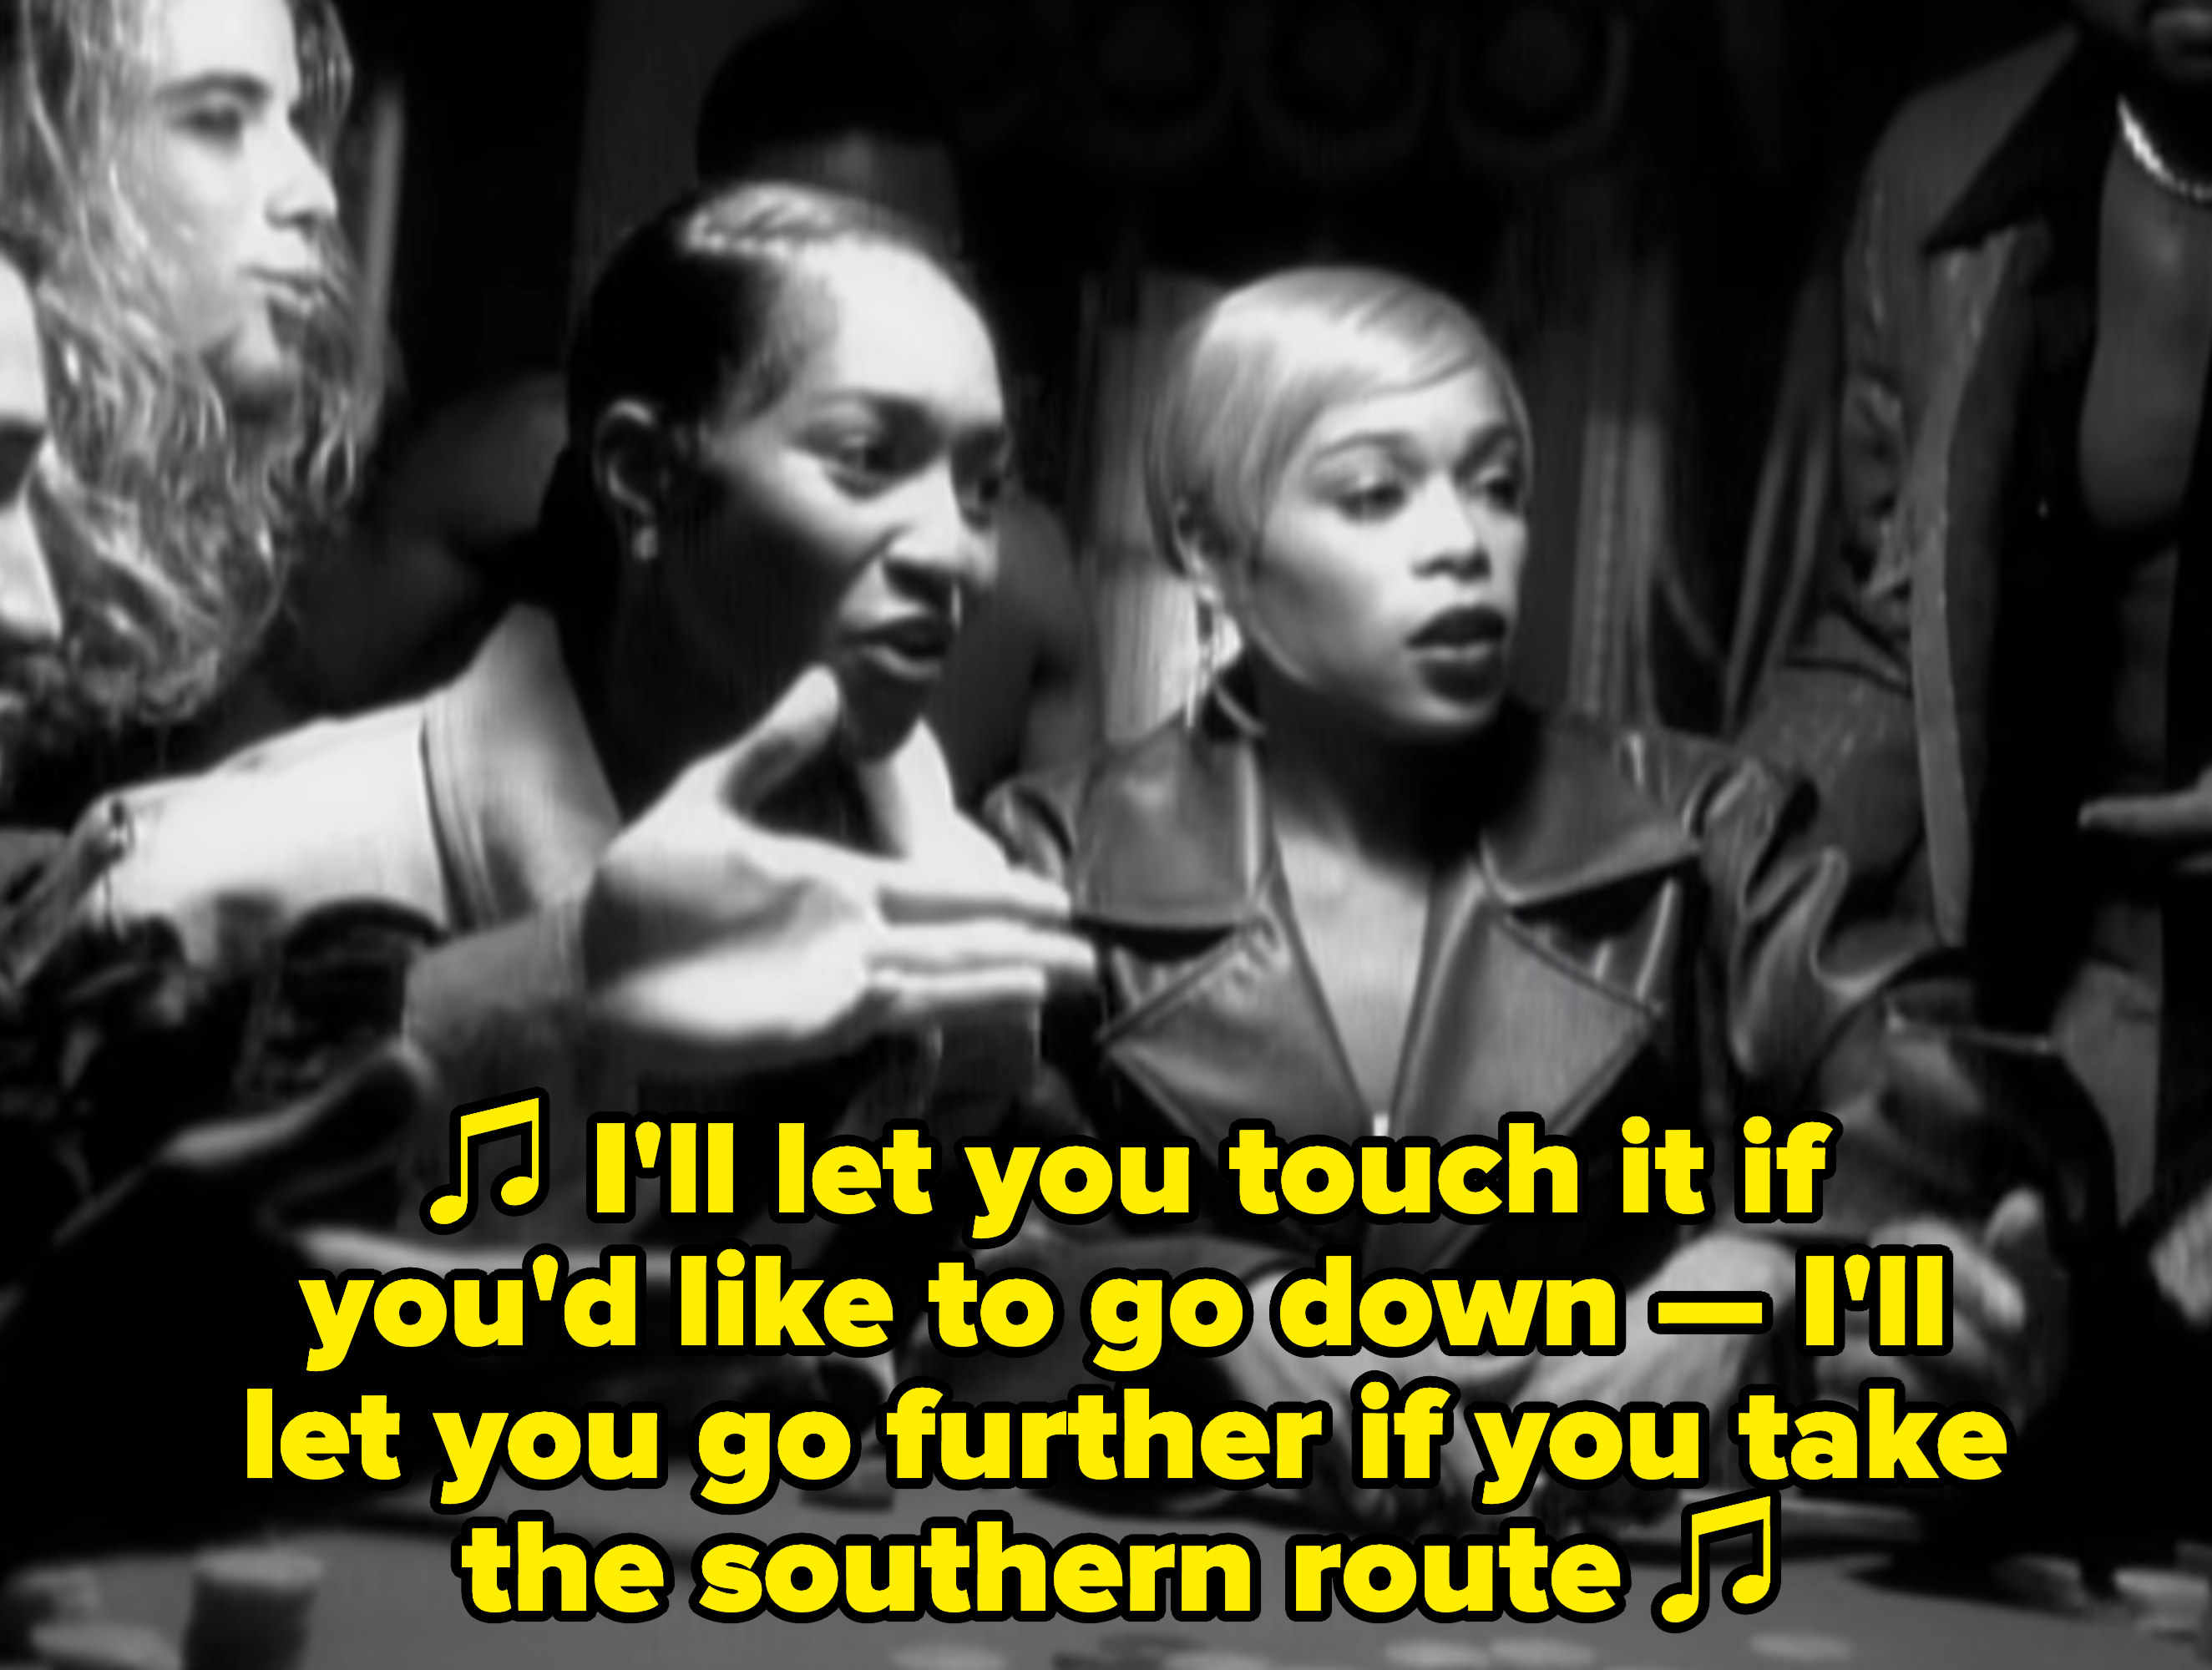 """TLC rapping: """"I'll let you touch it if you'd like to go down — I'll let you go further if you take the southern route"""""""